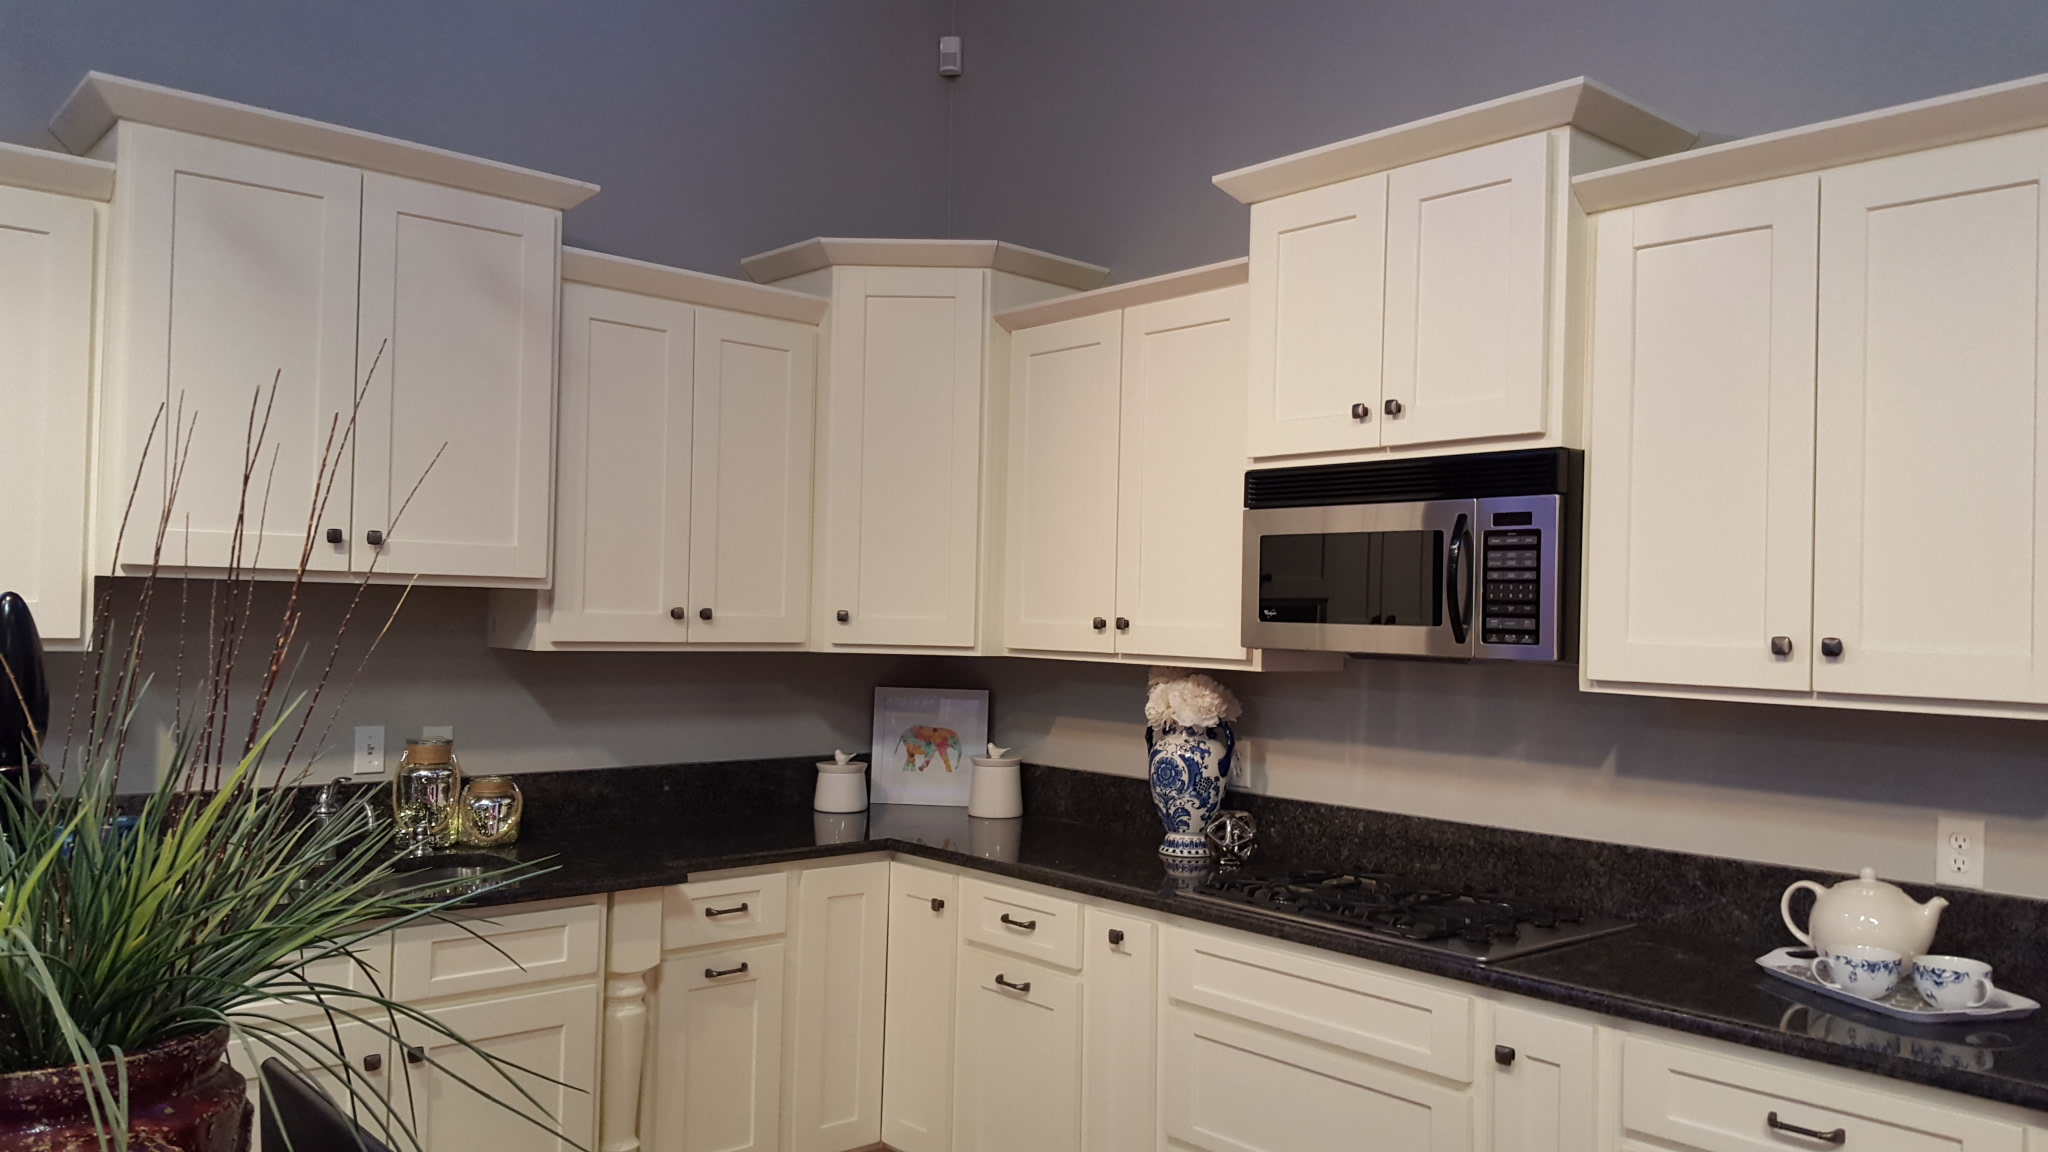 Photos Of Knotty Wood Alder Cabinets In The Kitchen